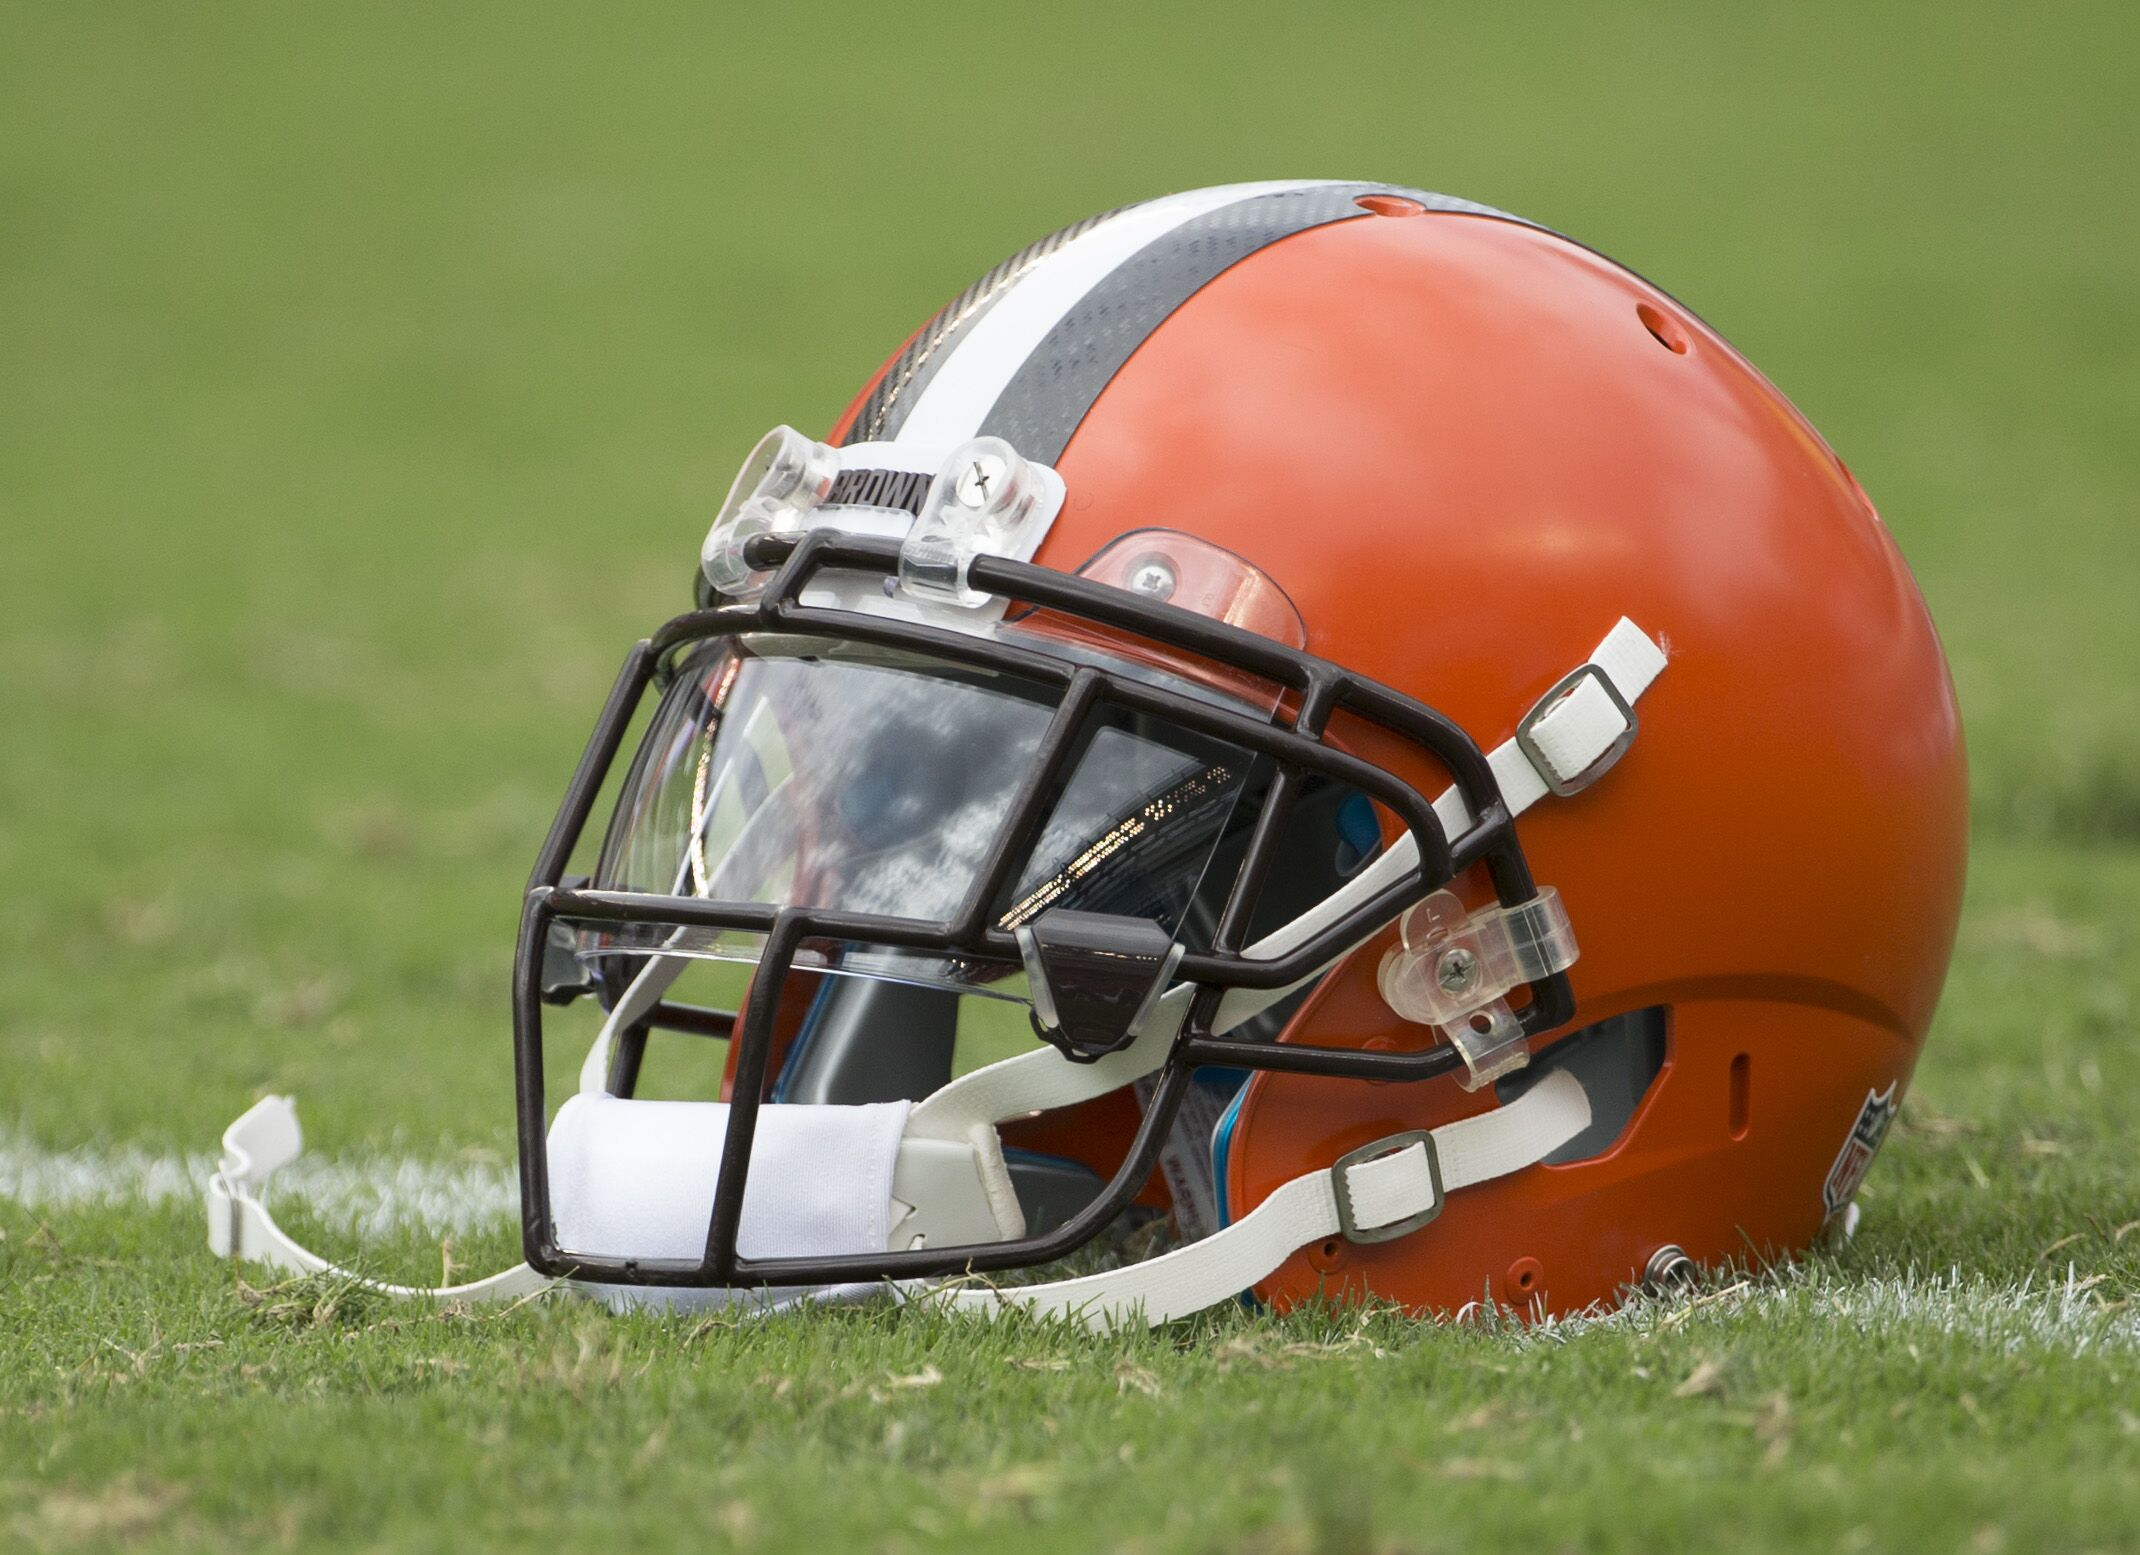 Cleveland Browns: Graphic designer says logo is 'boring'